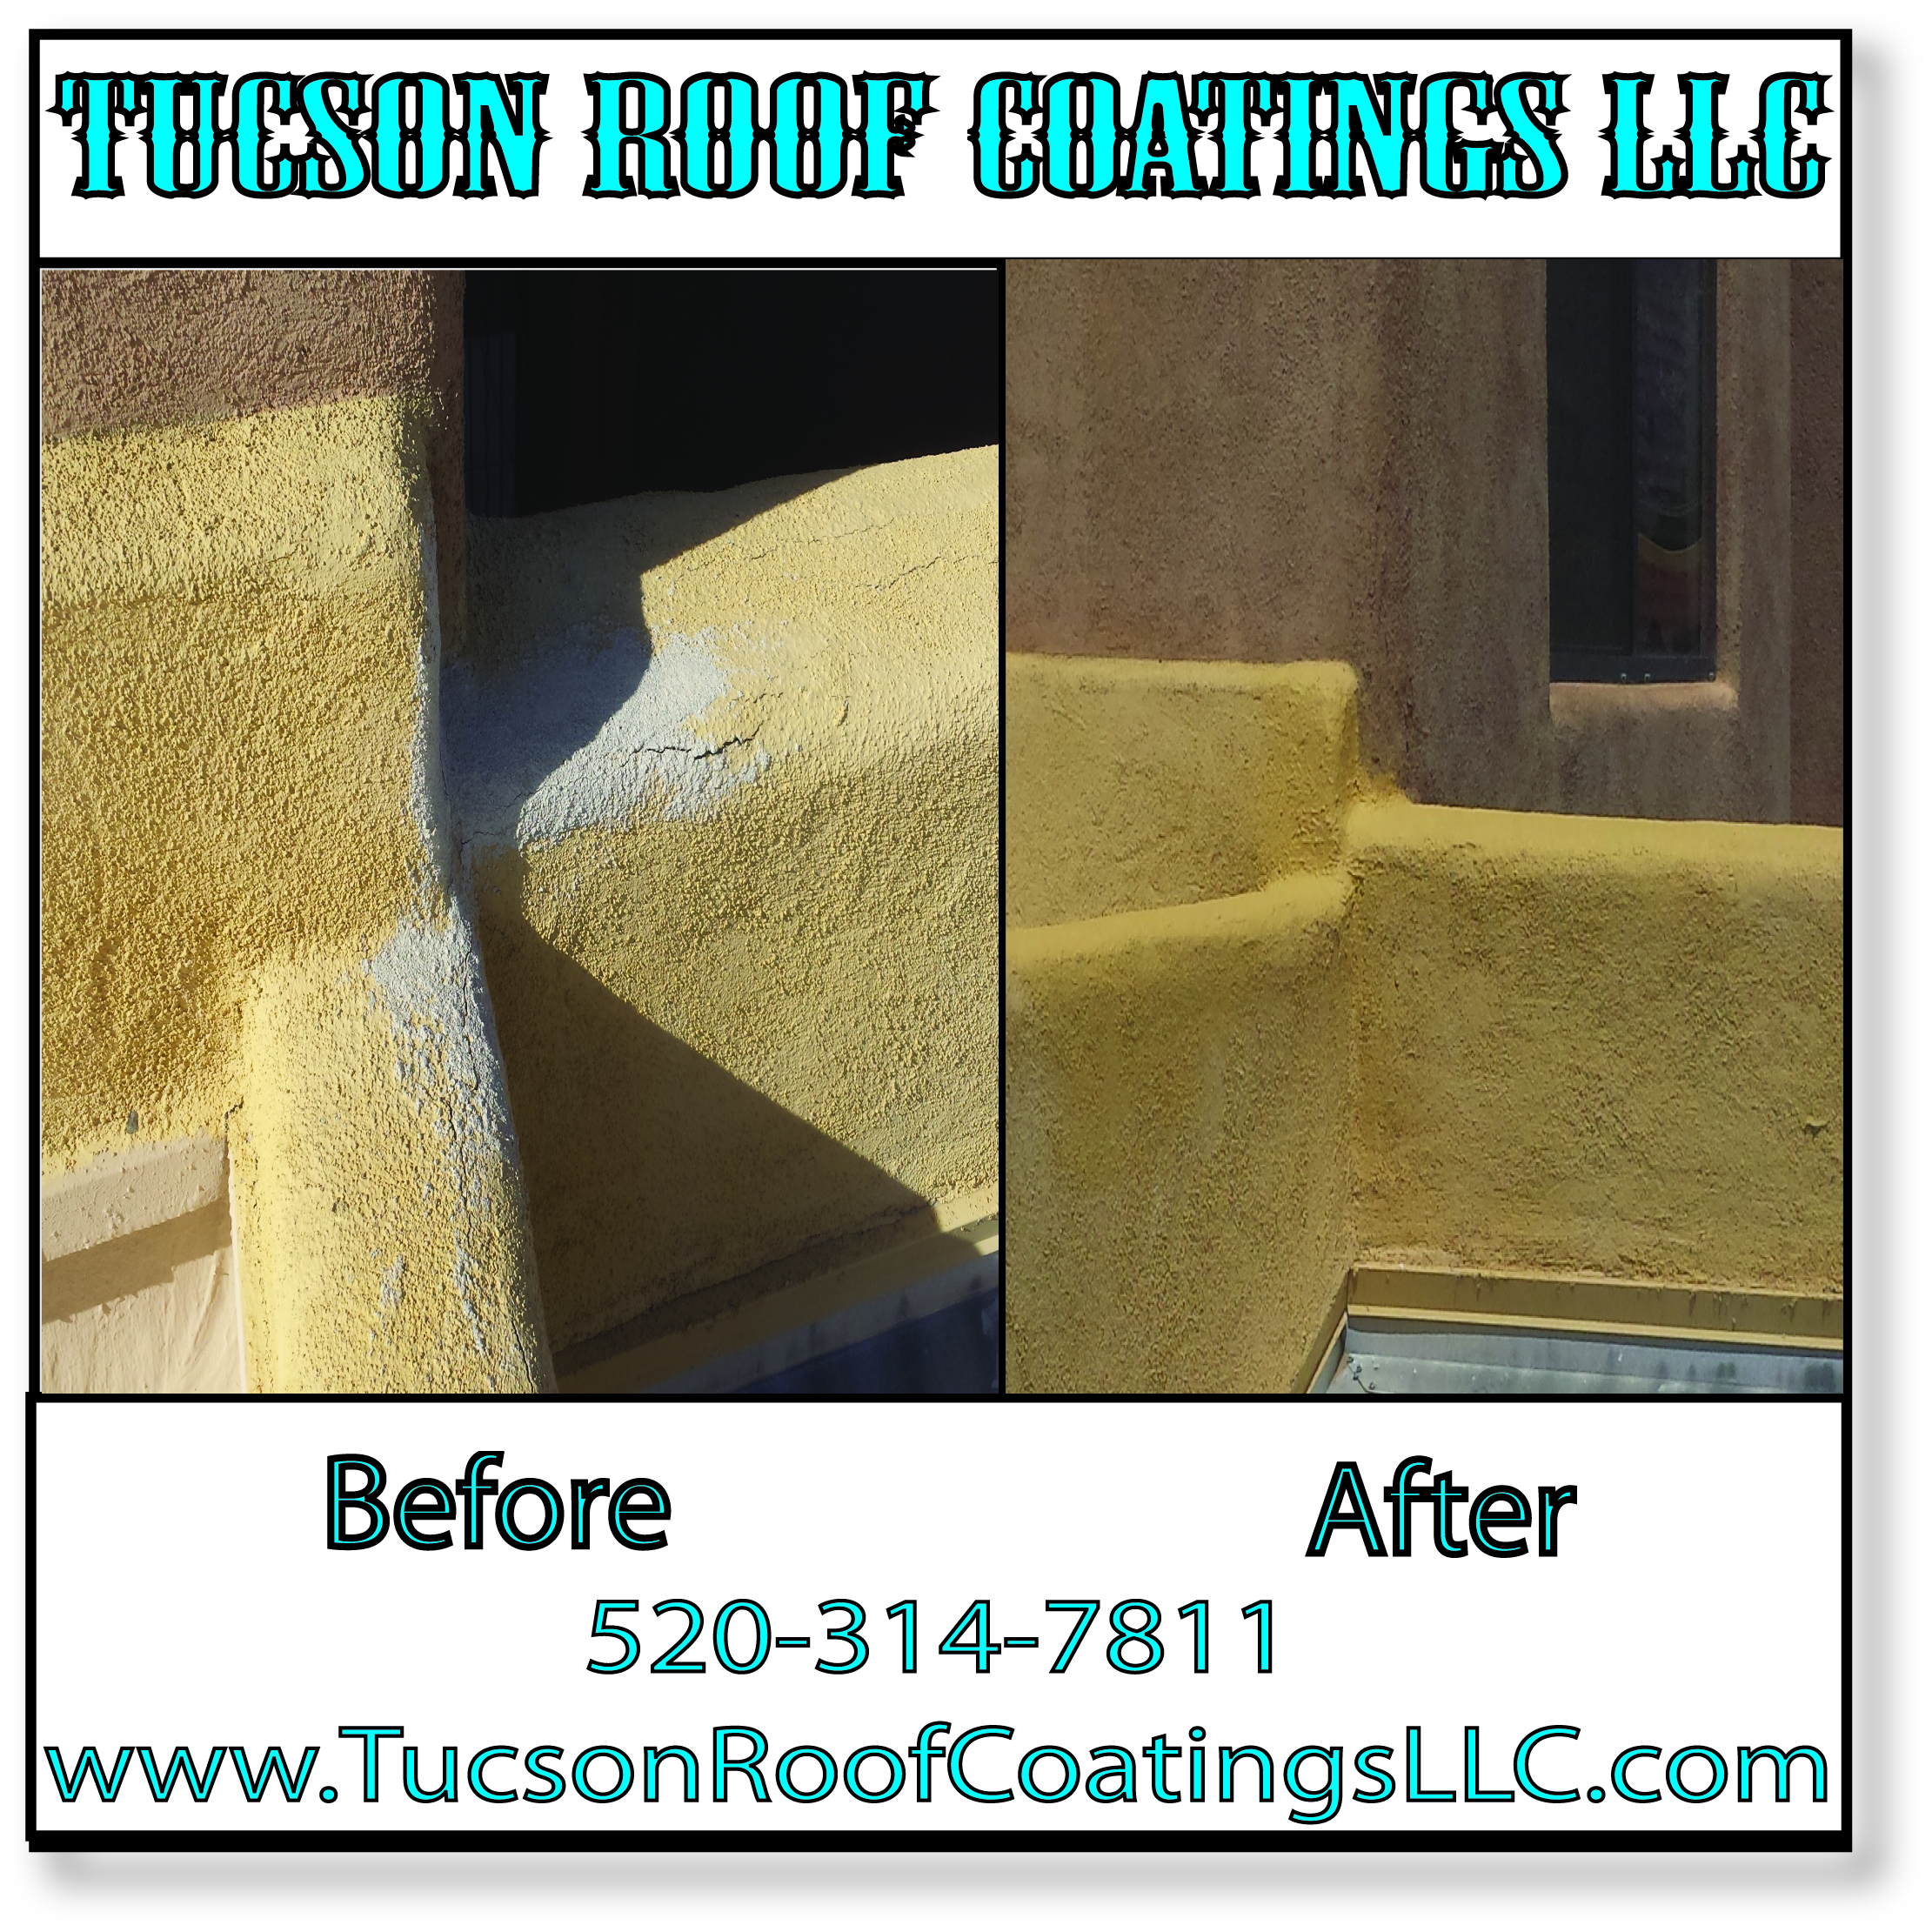 Before And After 4-14-2016 Tucson Roof Coatings LLC Stucco Repair